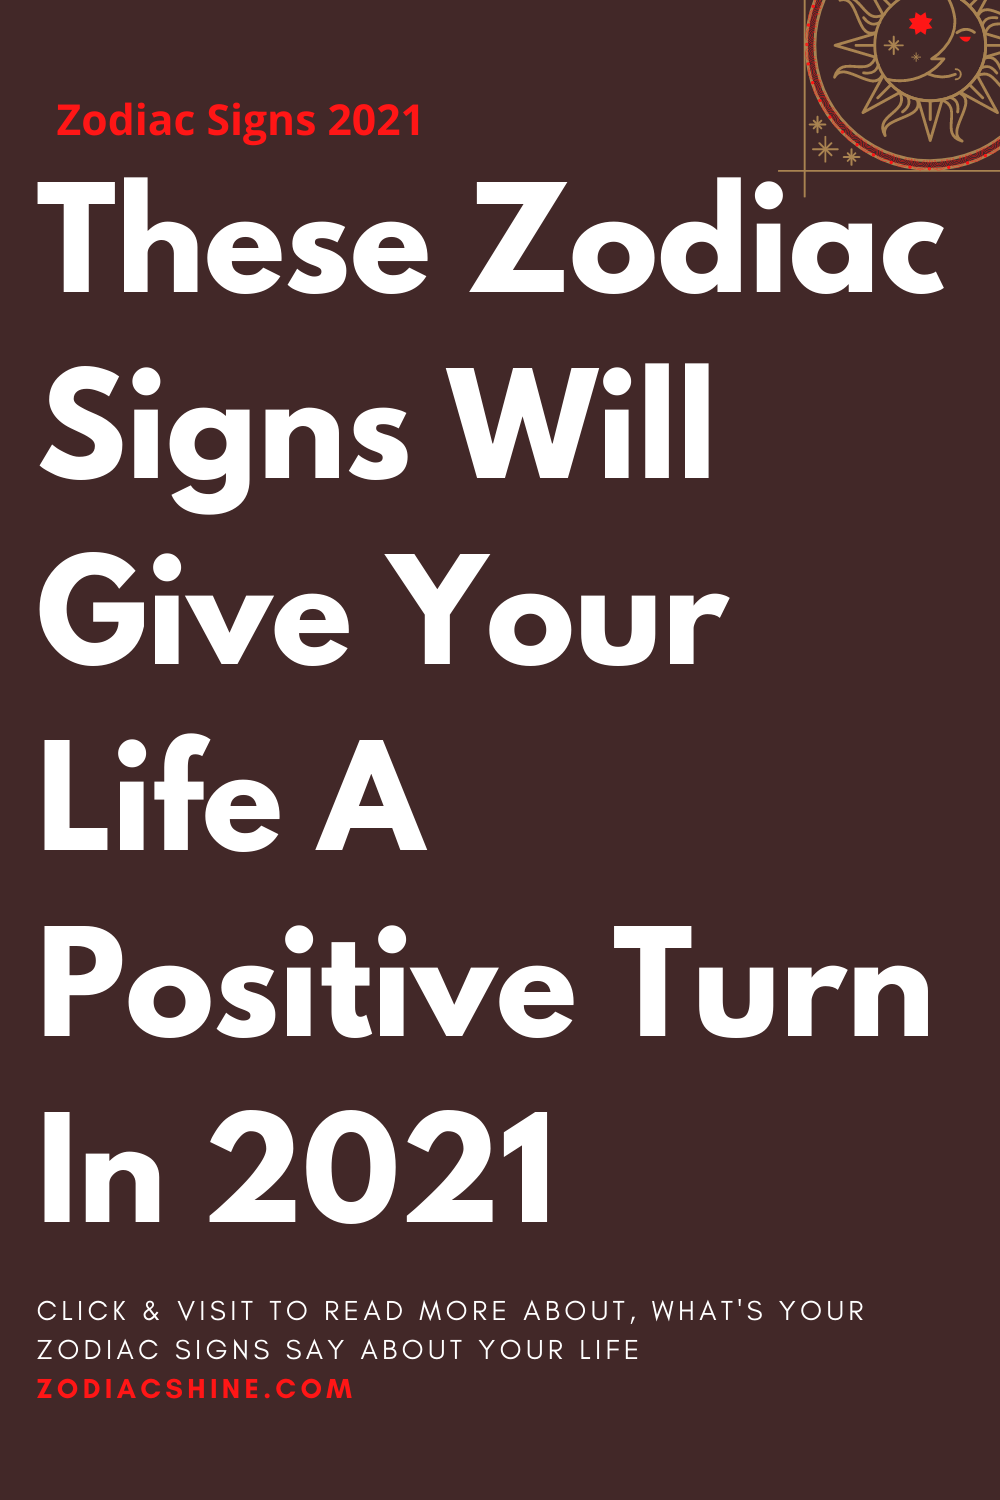 These Zodiac Signs Will Give Your Life A Positive Turn In 2021